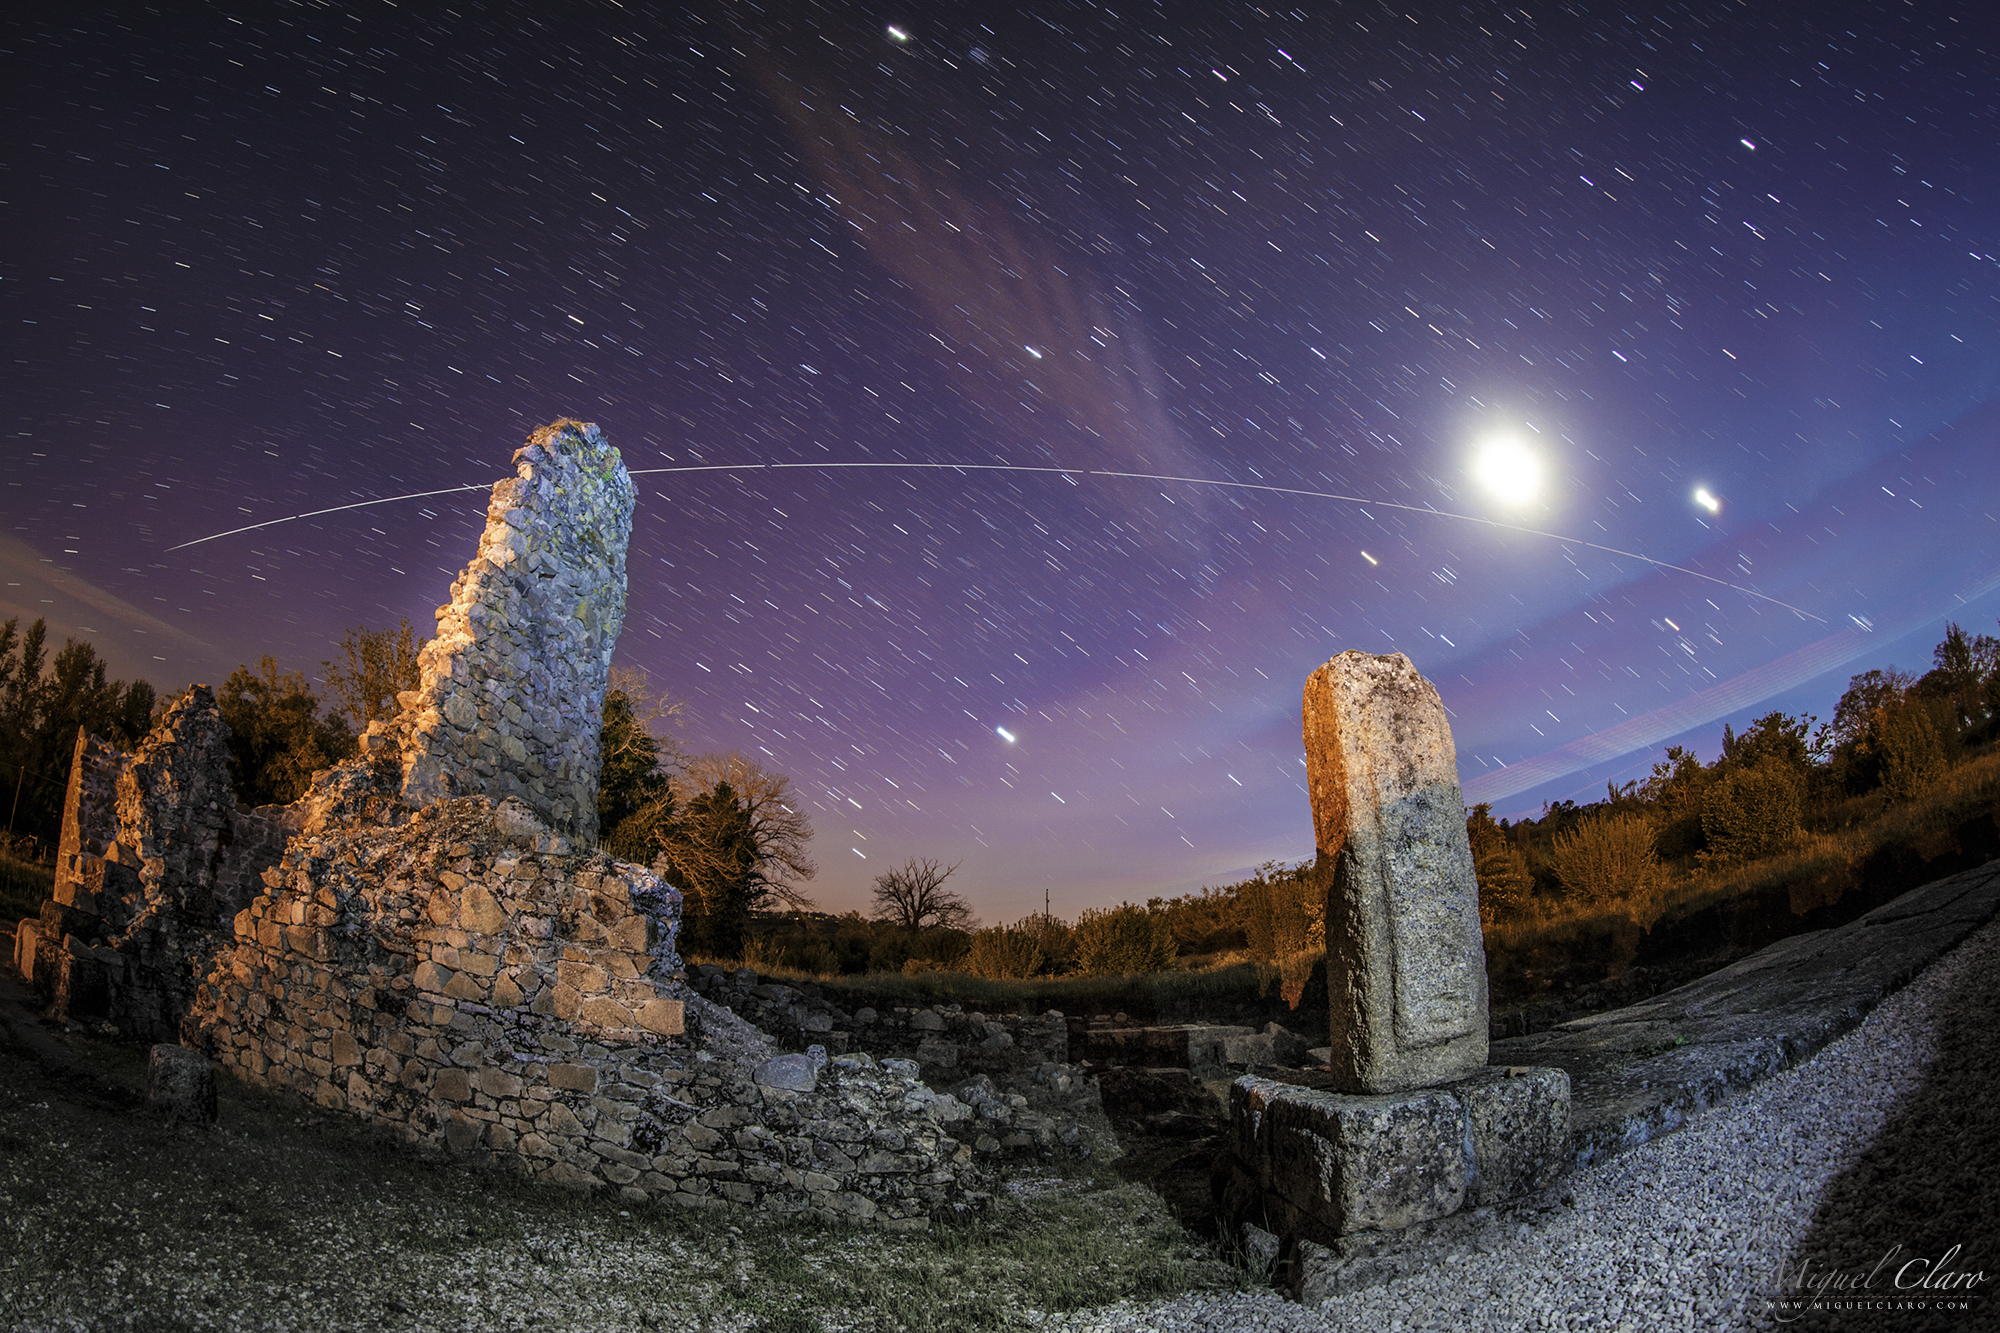 Space Station Flies Over Roman Ruins in Stunning Skywatcher Photo